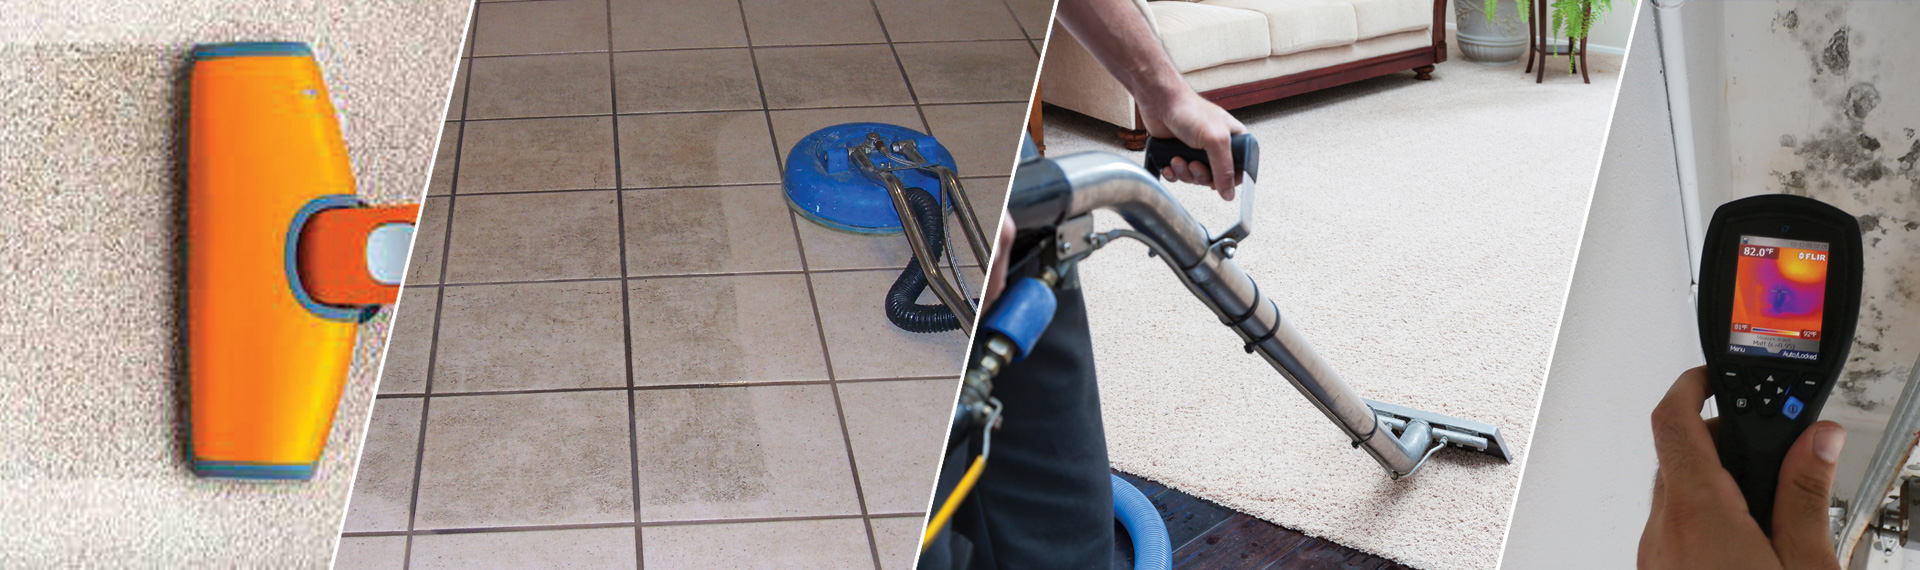 City Carpet Cleaners & Water Damage Restoration Cypress TX